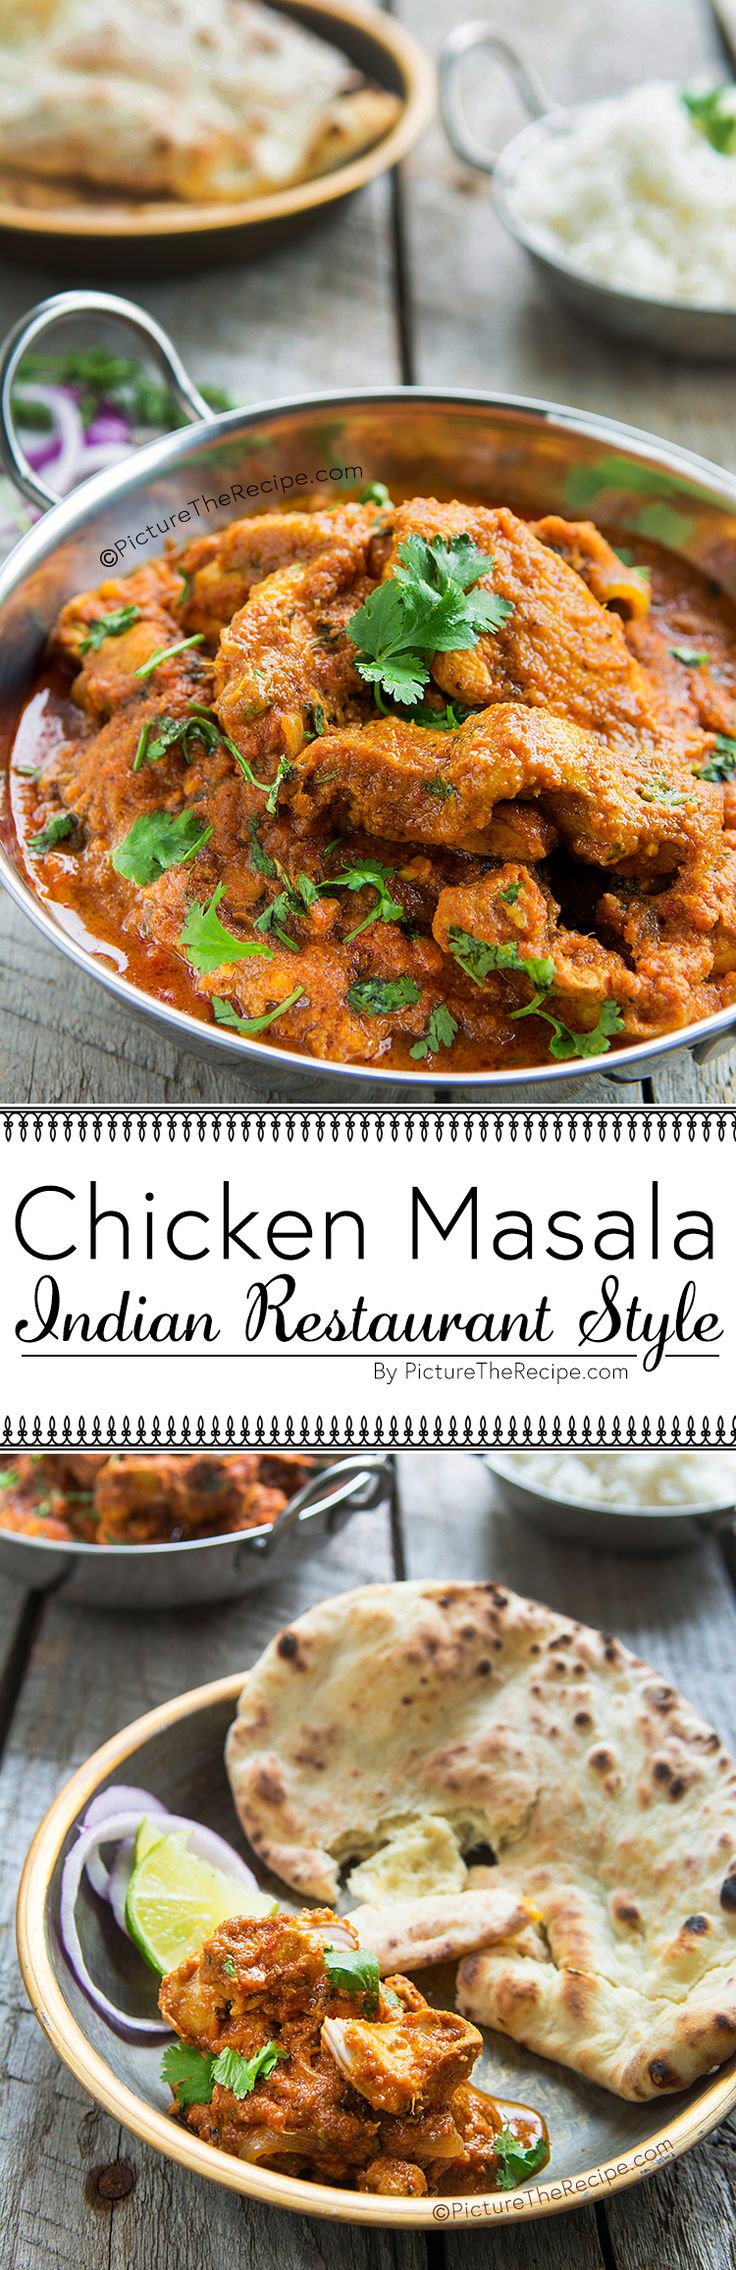 How To Make Indian Restaurant- Style Chicken Masala